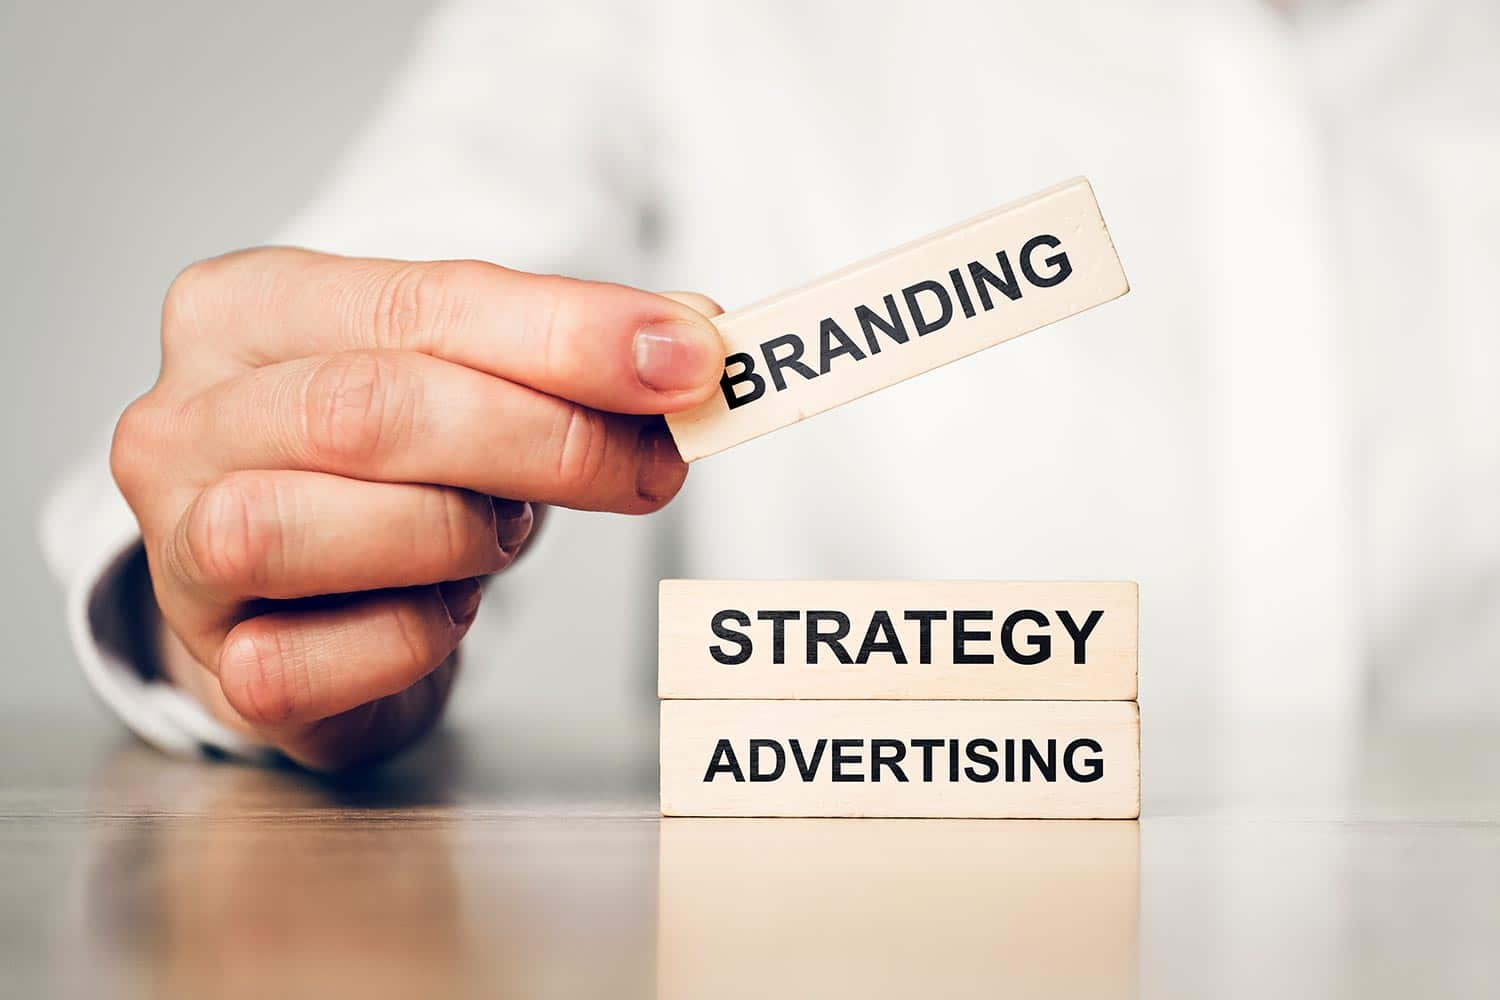 Branding and advertising strategy